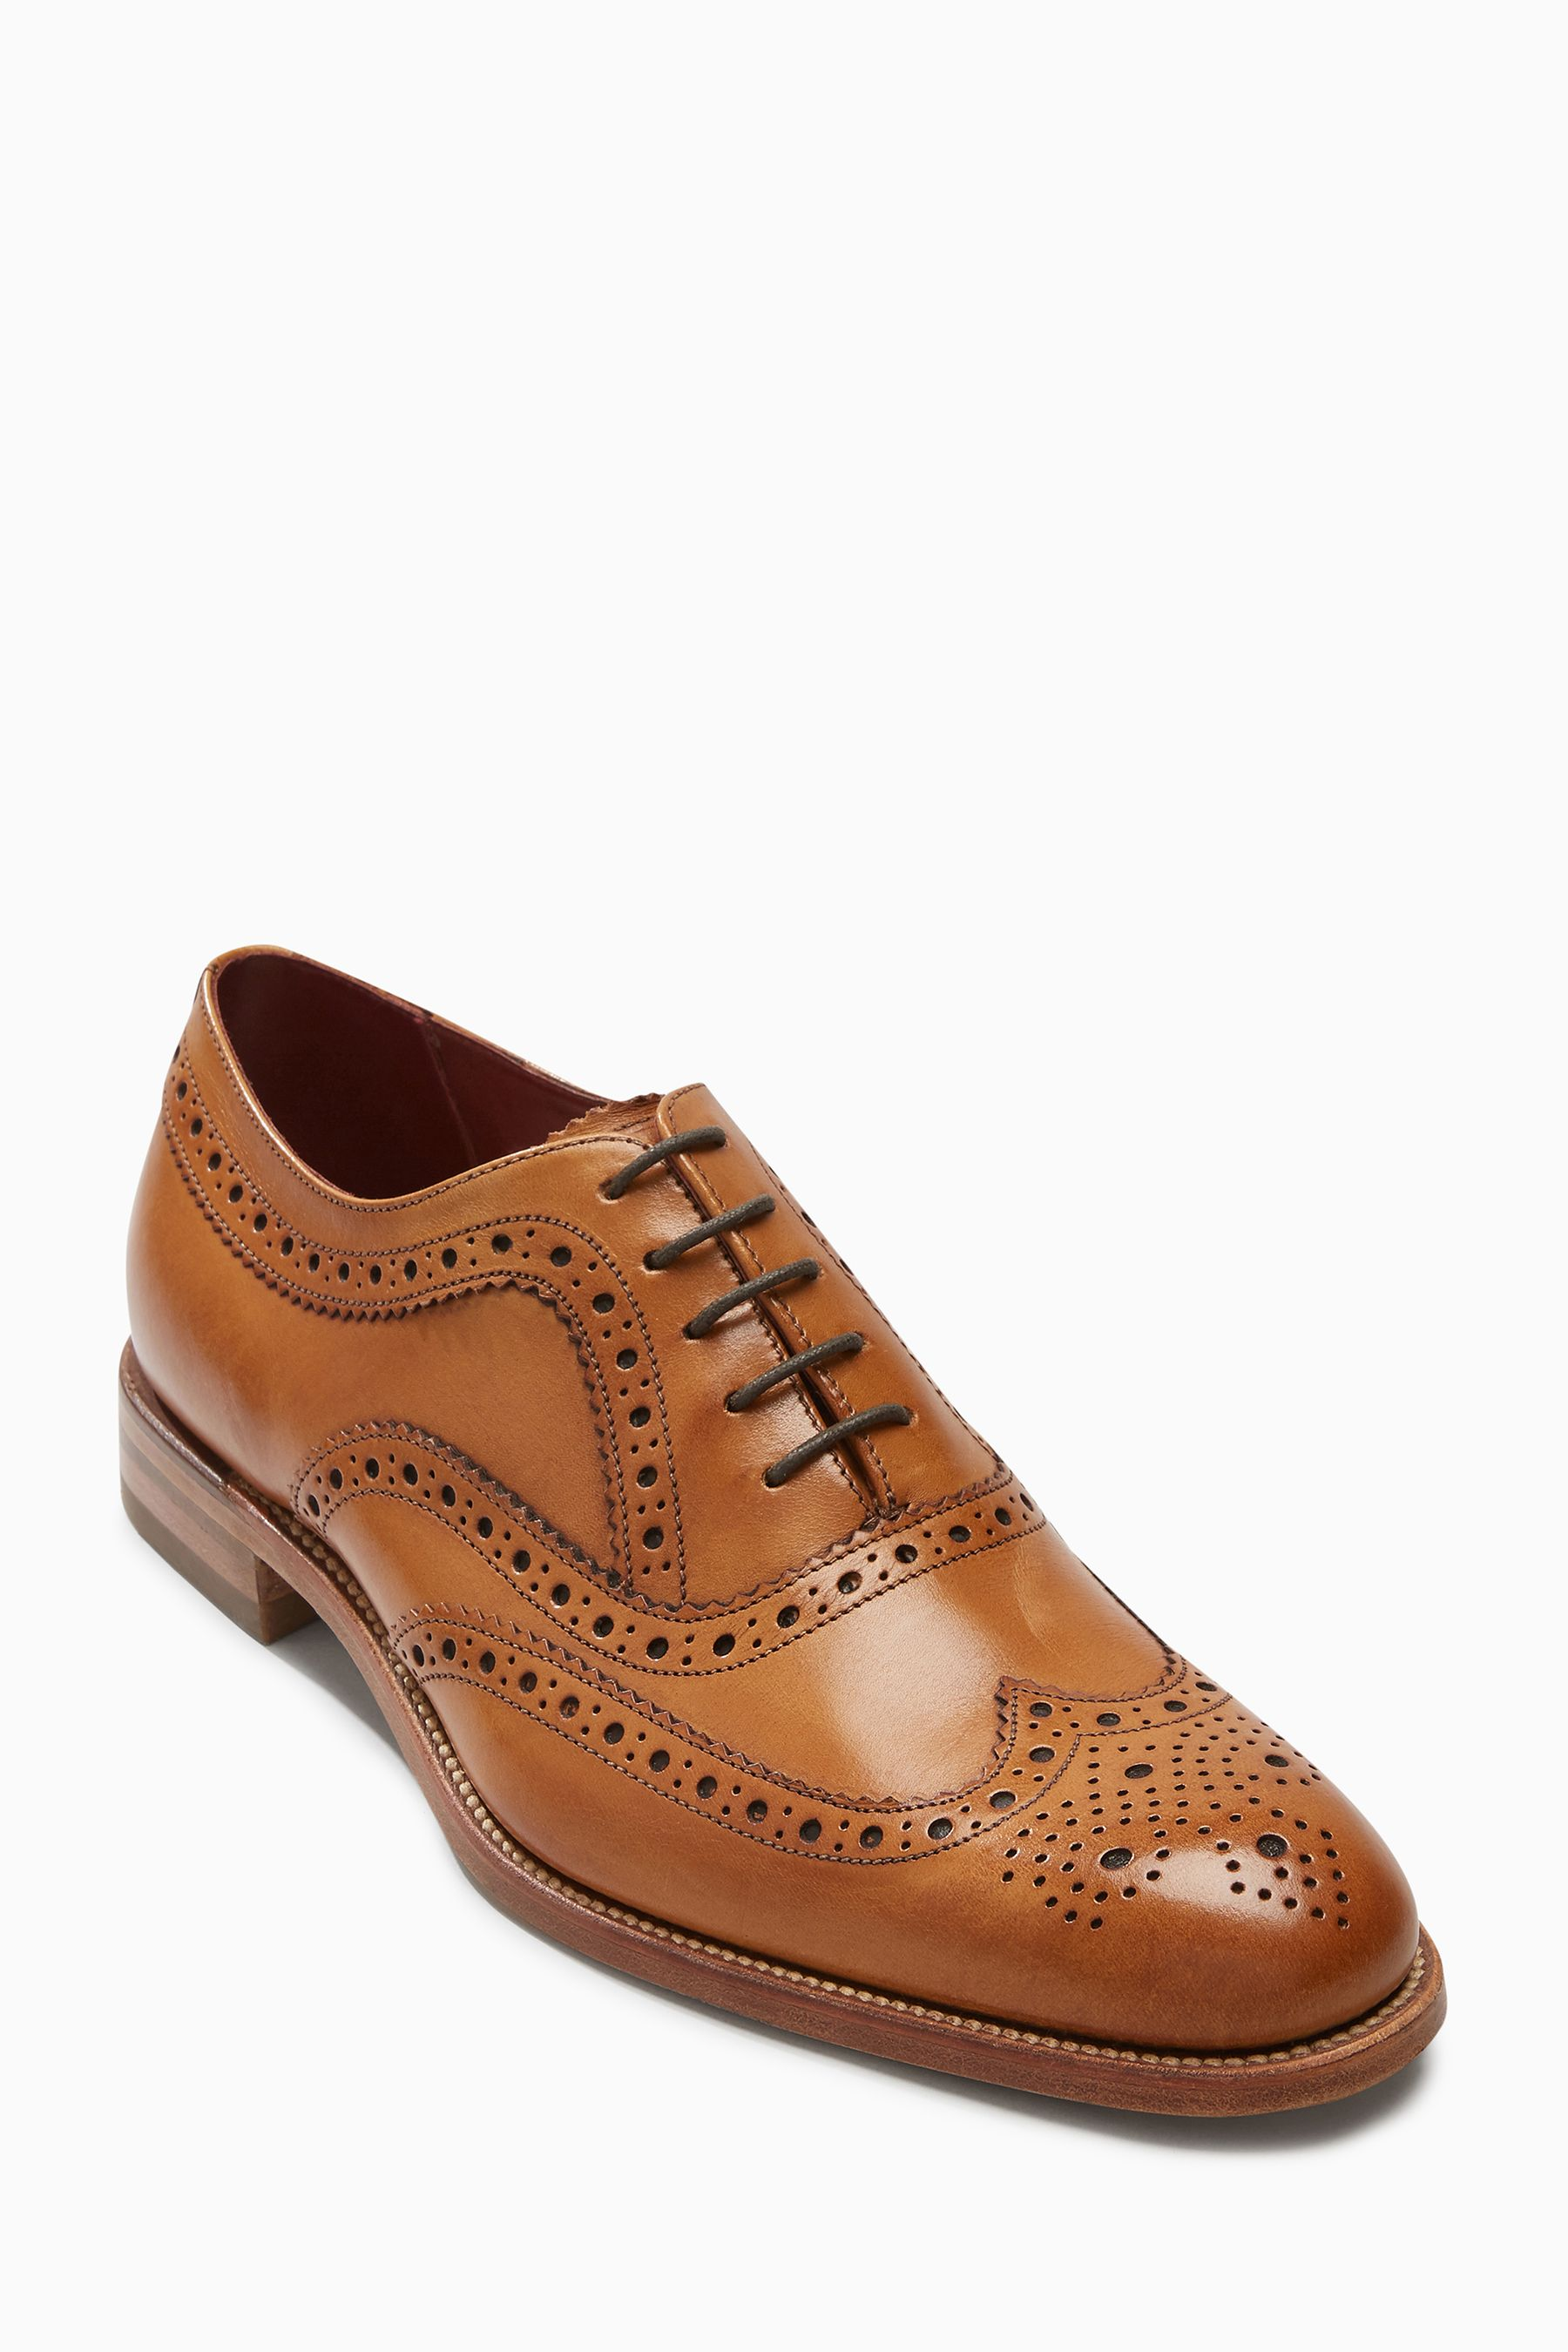 6950bcbf Mens Loake Fearnley Brogue Shoe - Red | Shoes | Shoes, Dress Shoes ...